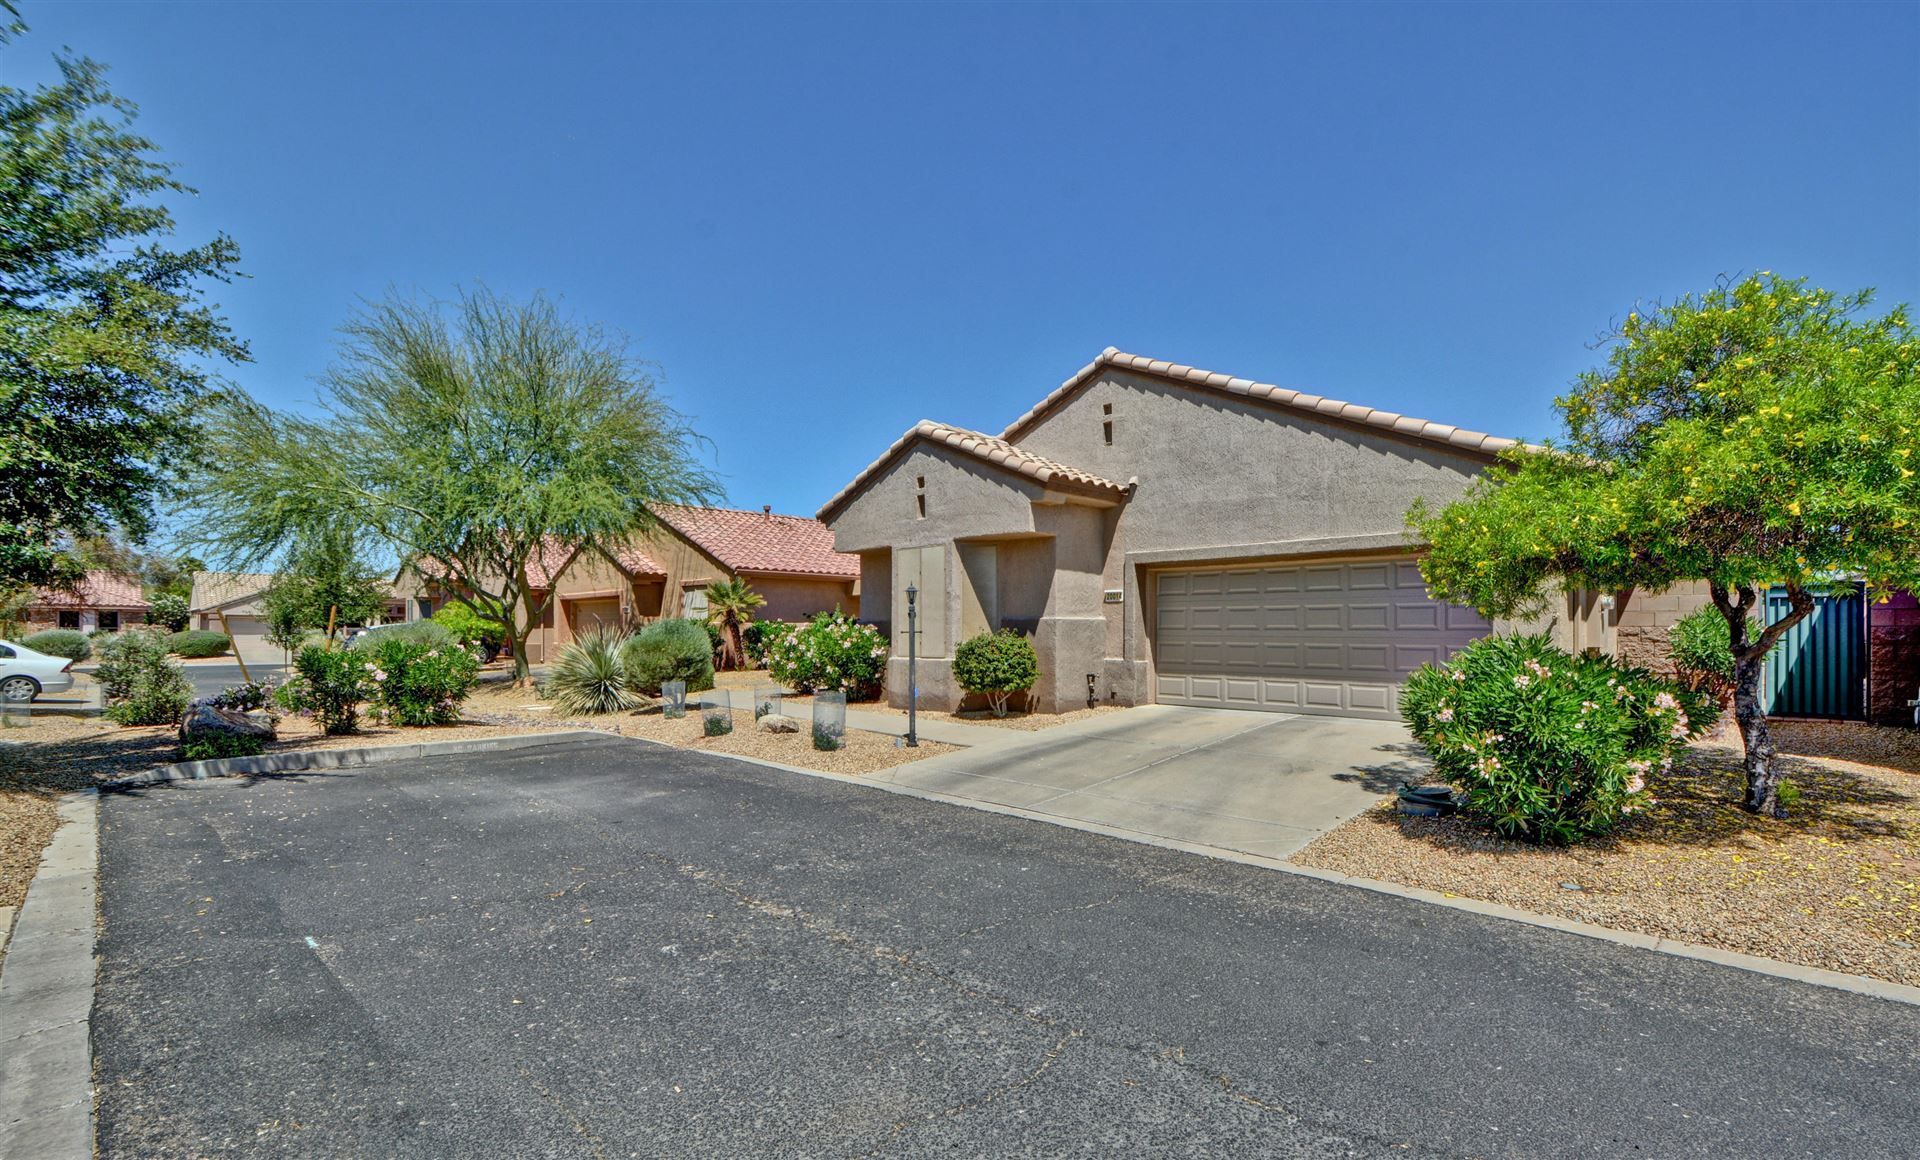 20014 N SIESTA ROCK Drive, Surprise, AZ 85374 - MLS#: 6233442